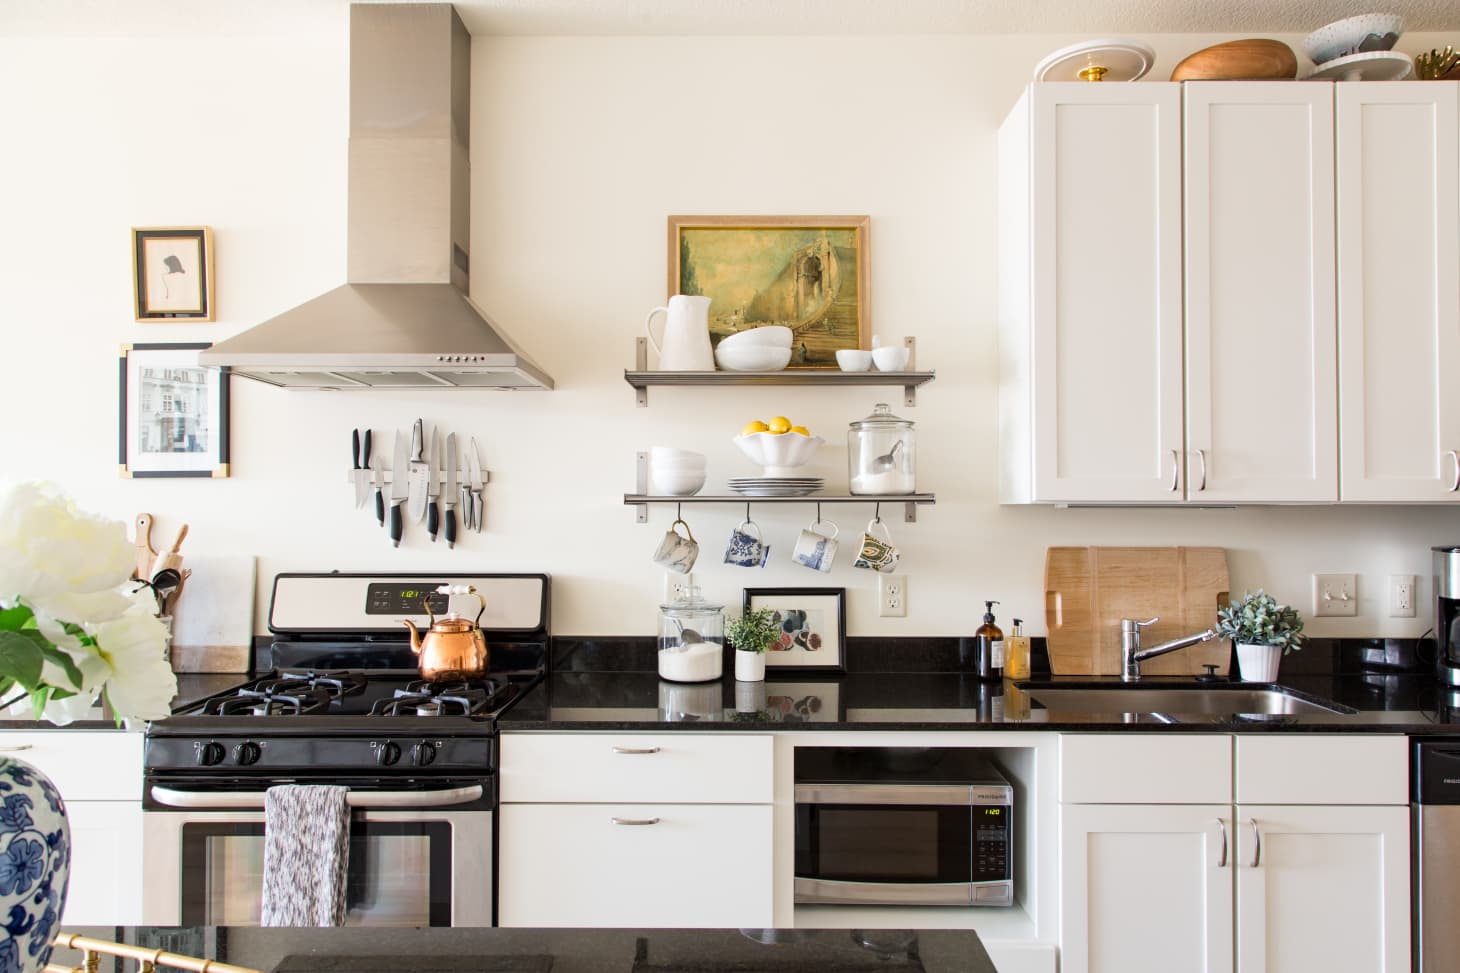 Best Kitchen Design Myers Briggs Personality Type | Kitchn